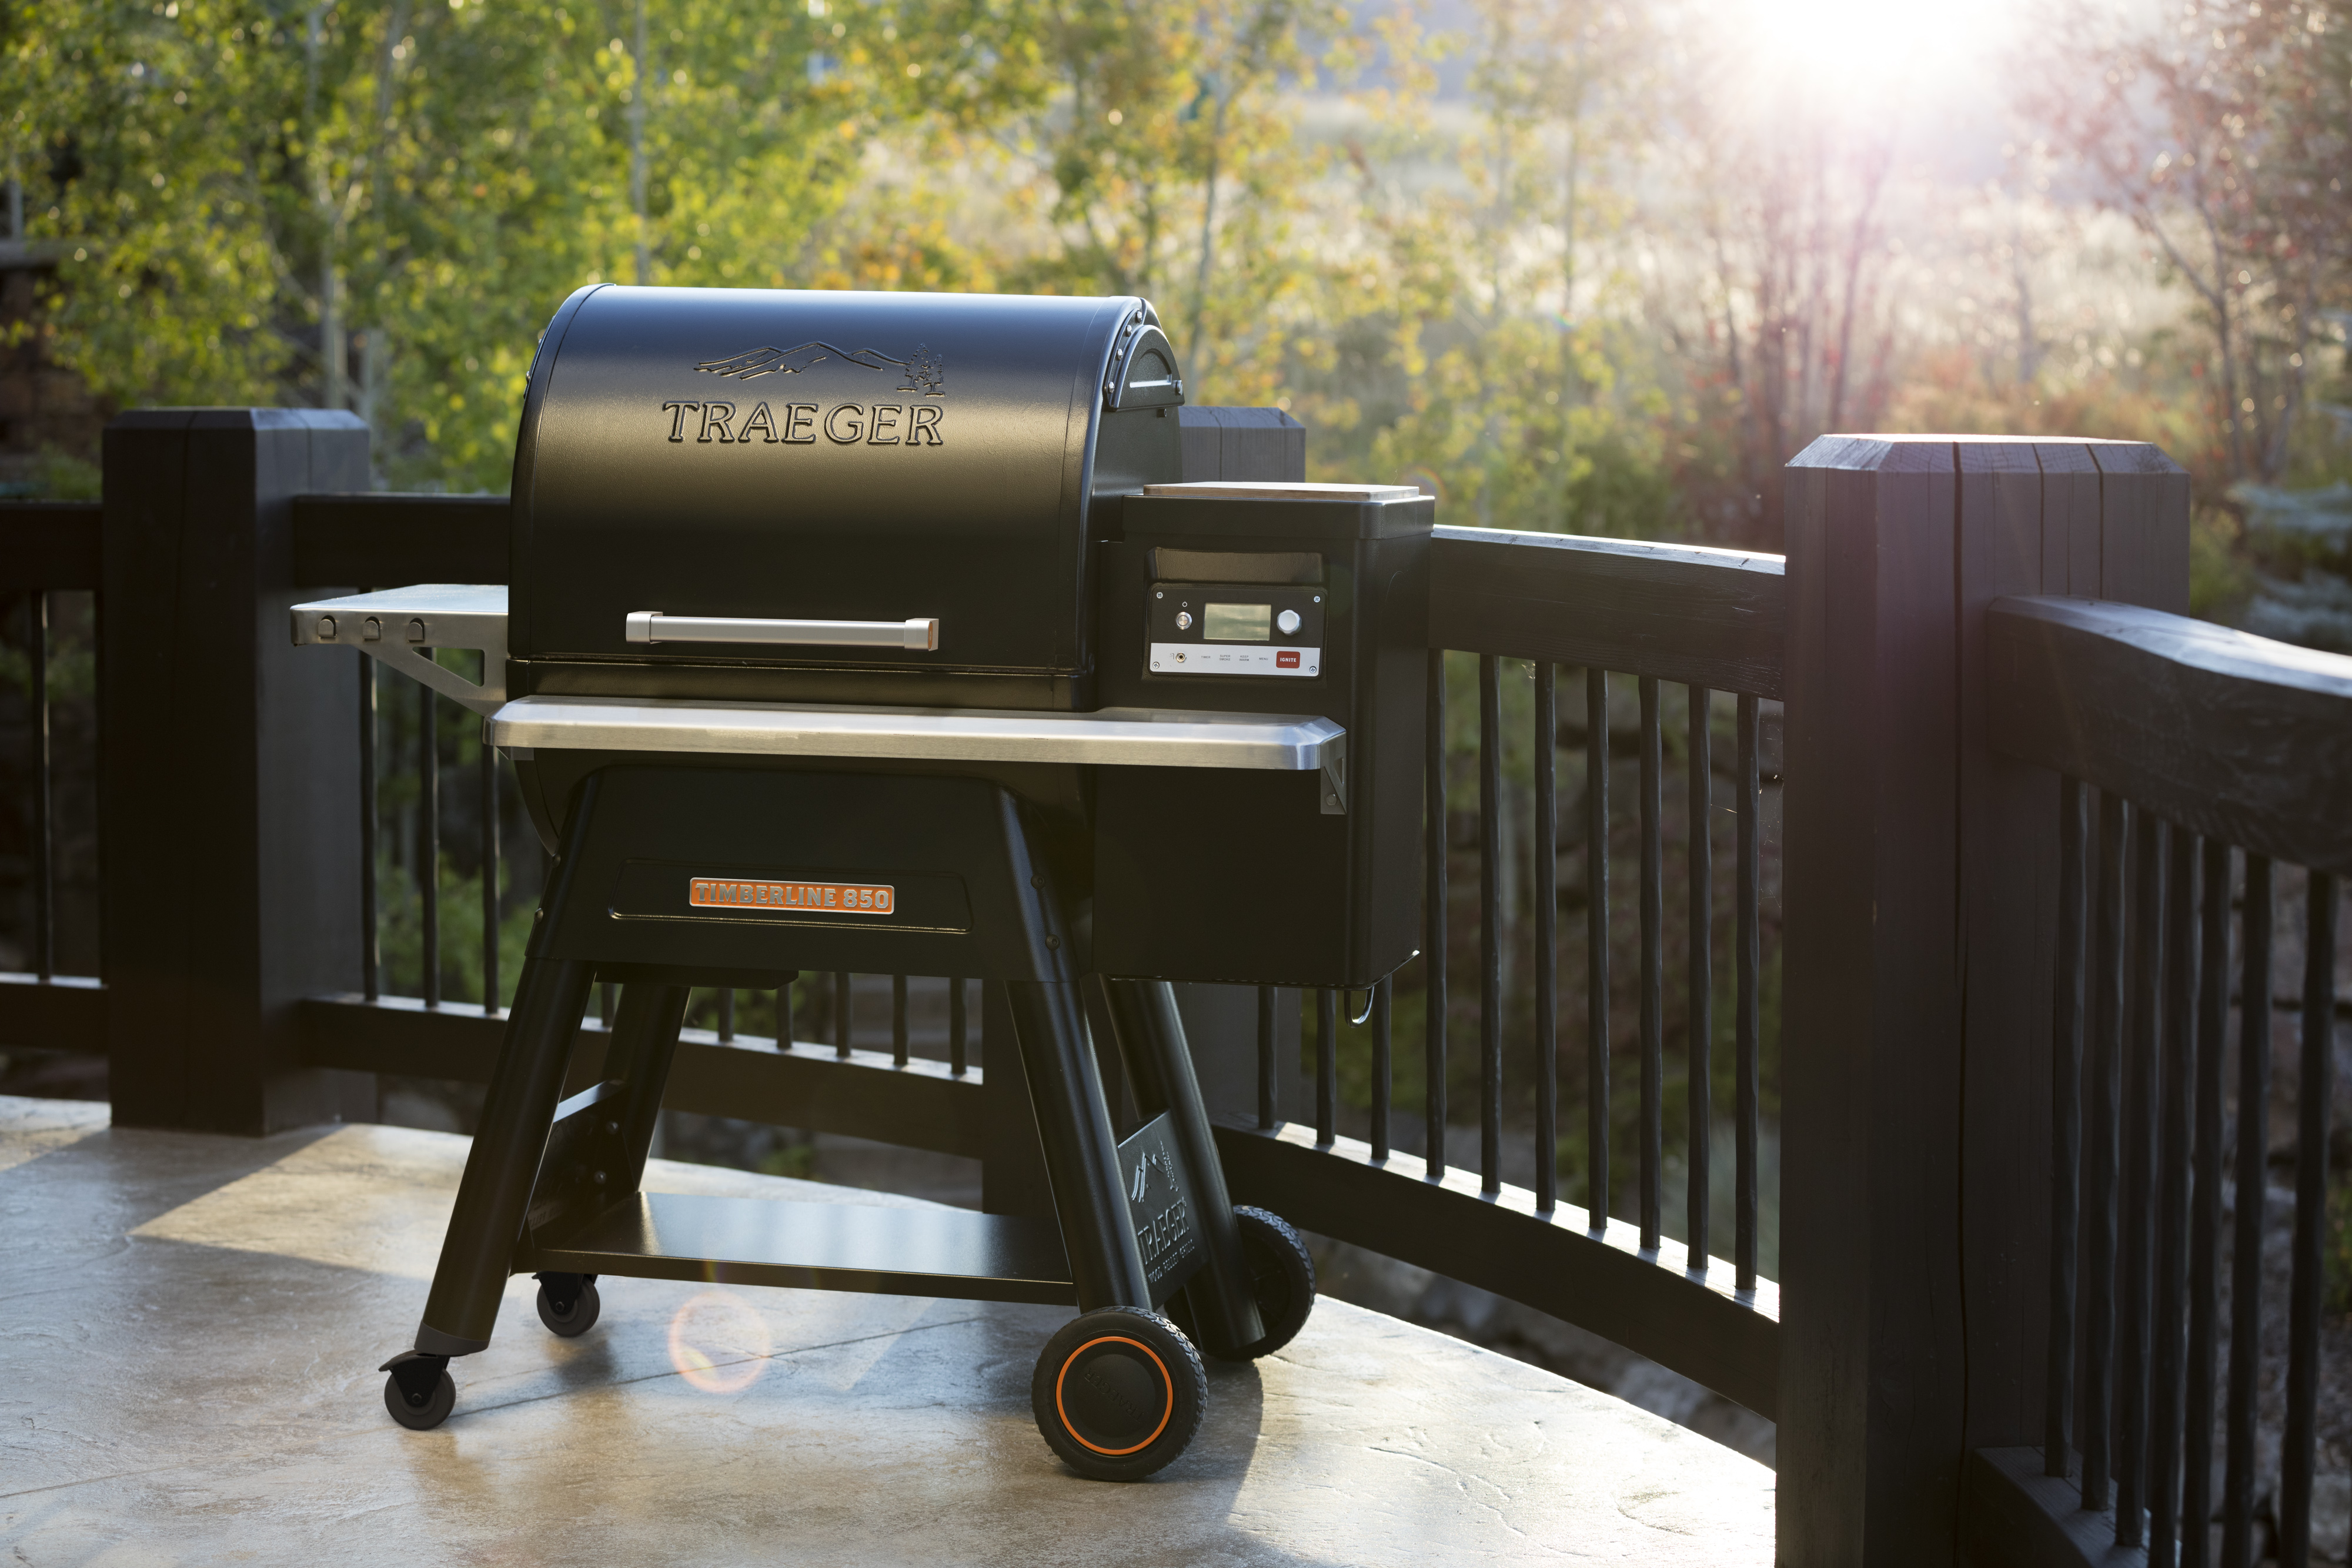 Traeger Timberline Lets You Keep Grilling While You Re On